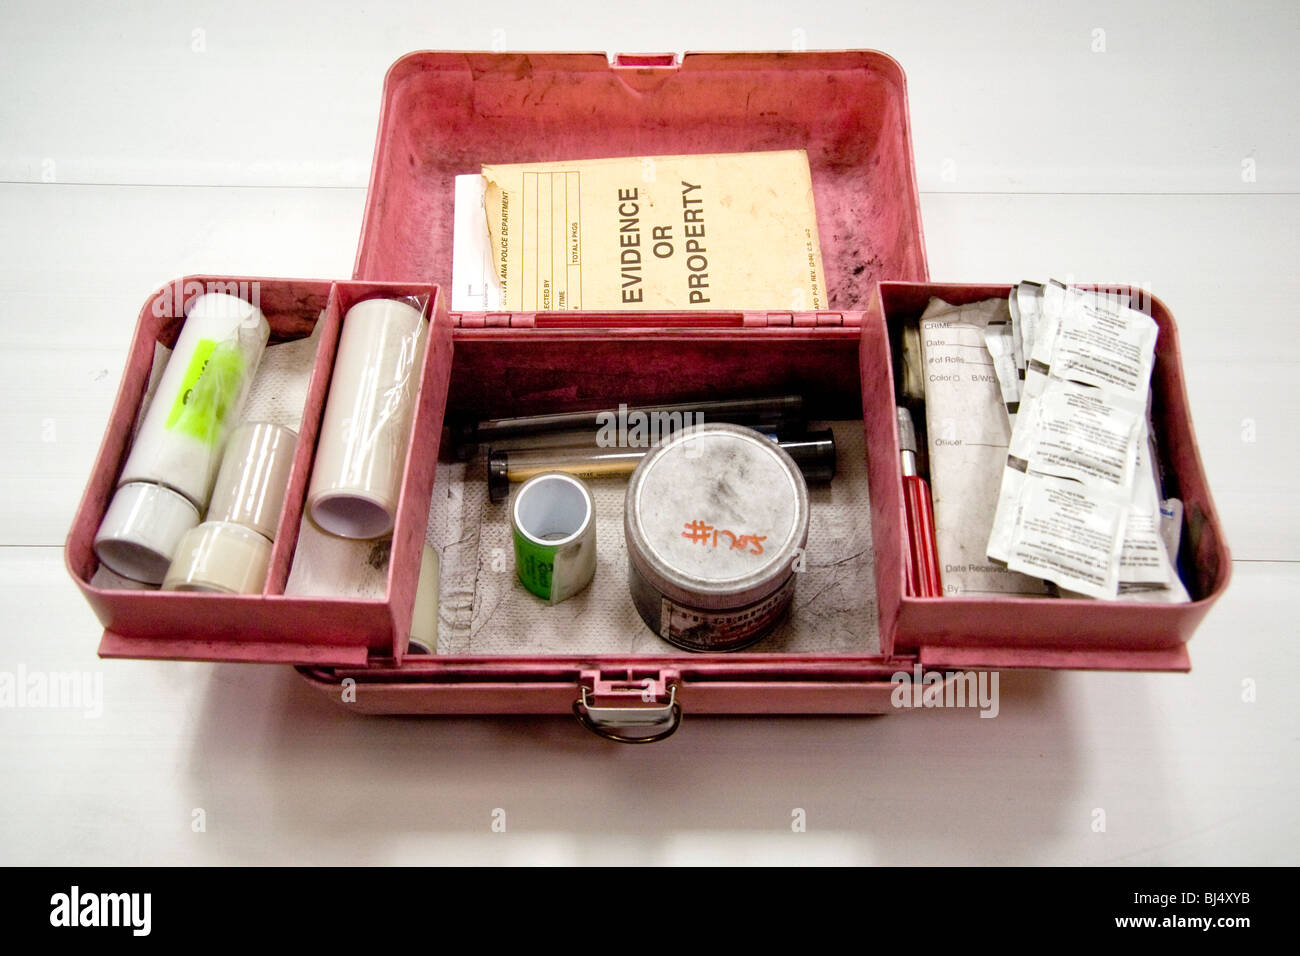 Equipped with powder, brushes, lifting tapes, evidence book and cleanups, a police fingerprint kit is ready for - Stock Image